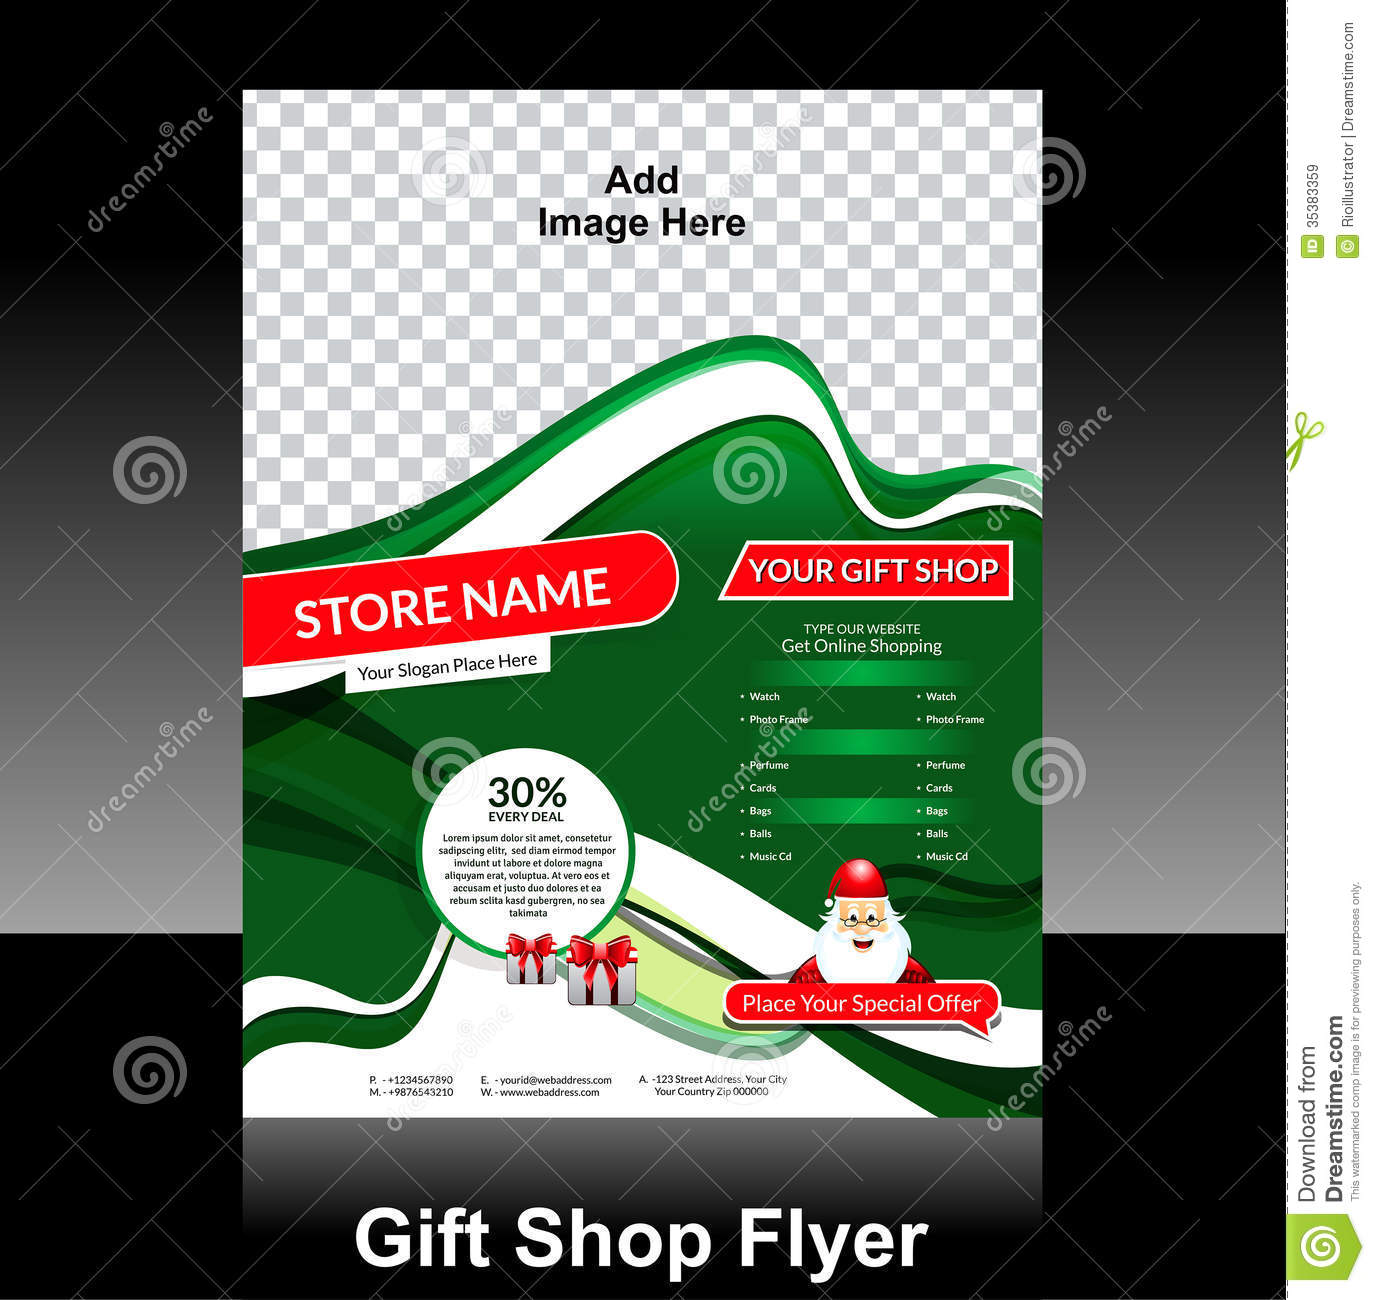 Gift Shop Flyer Design Royalty Free Stock Images - Image: 35383359